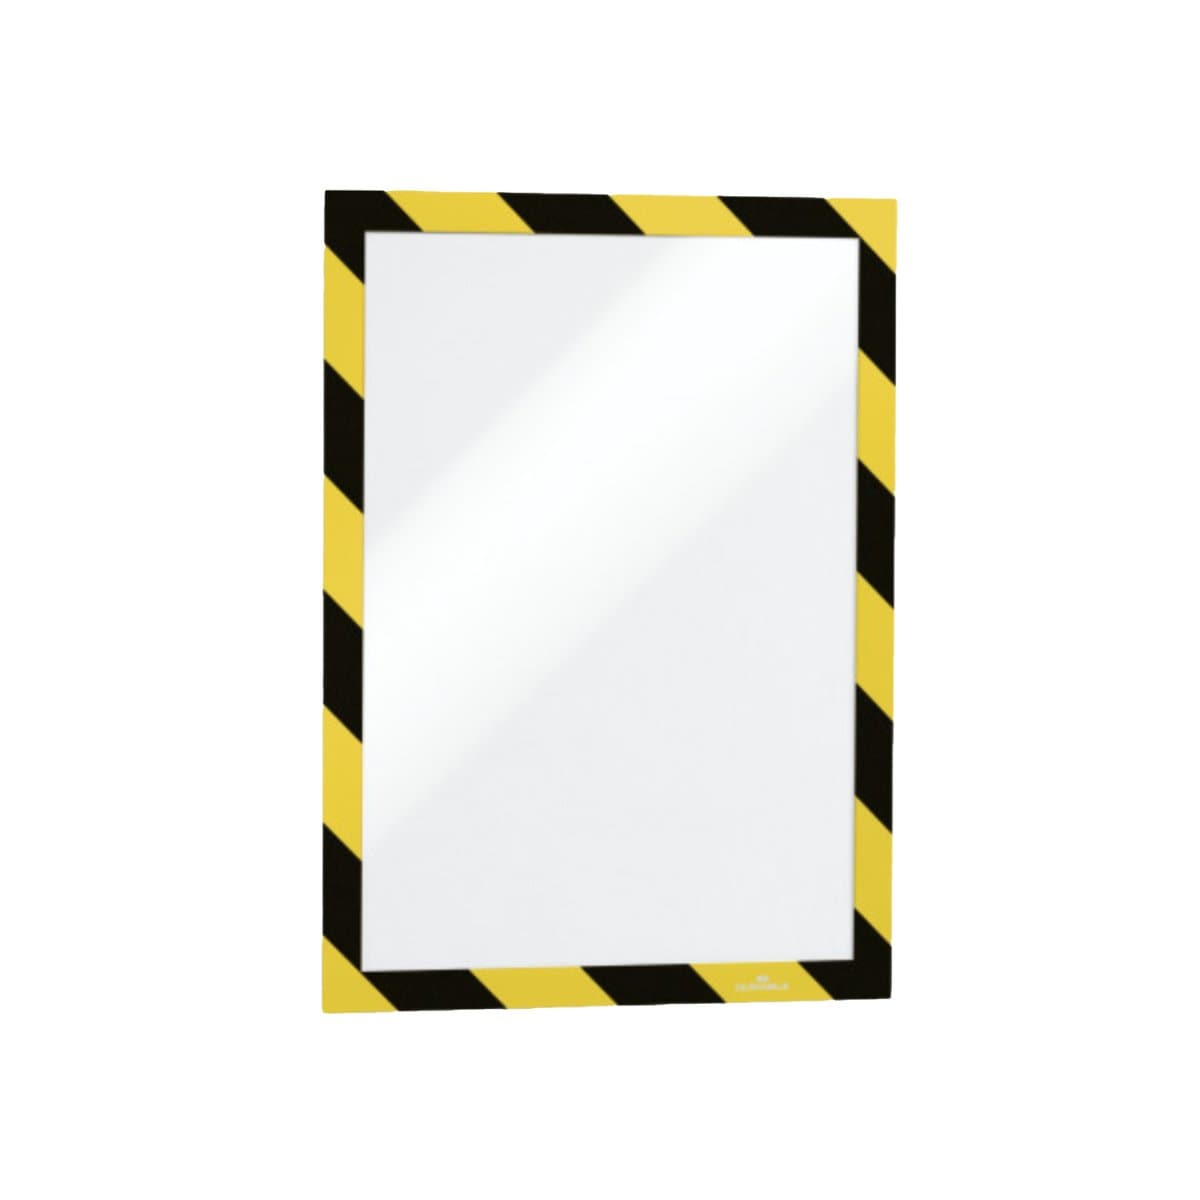 Durable DURAFRAME Security, Self-Adhesive Magnetic Frame A4, 2/pack, Black/Yellow